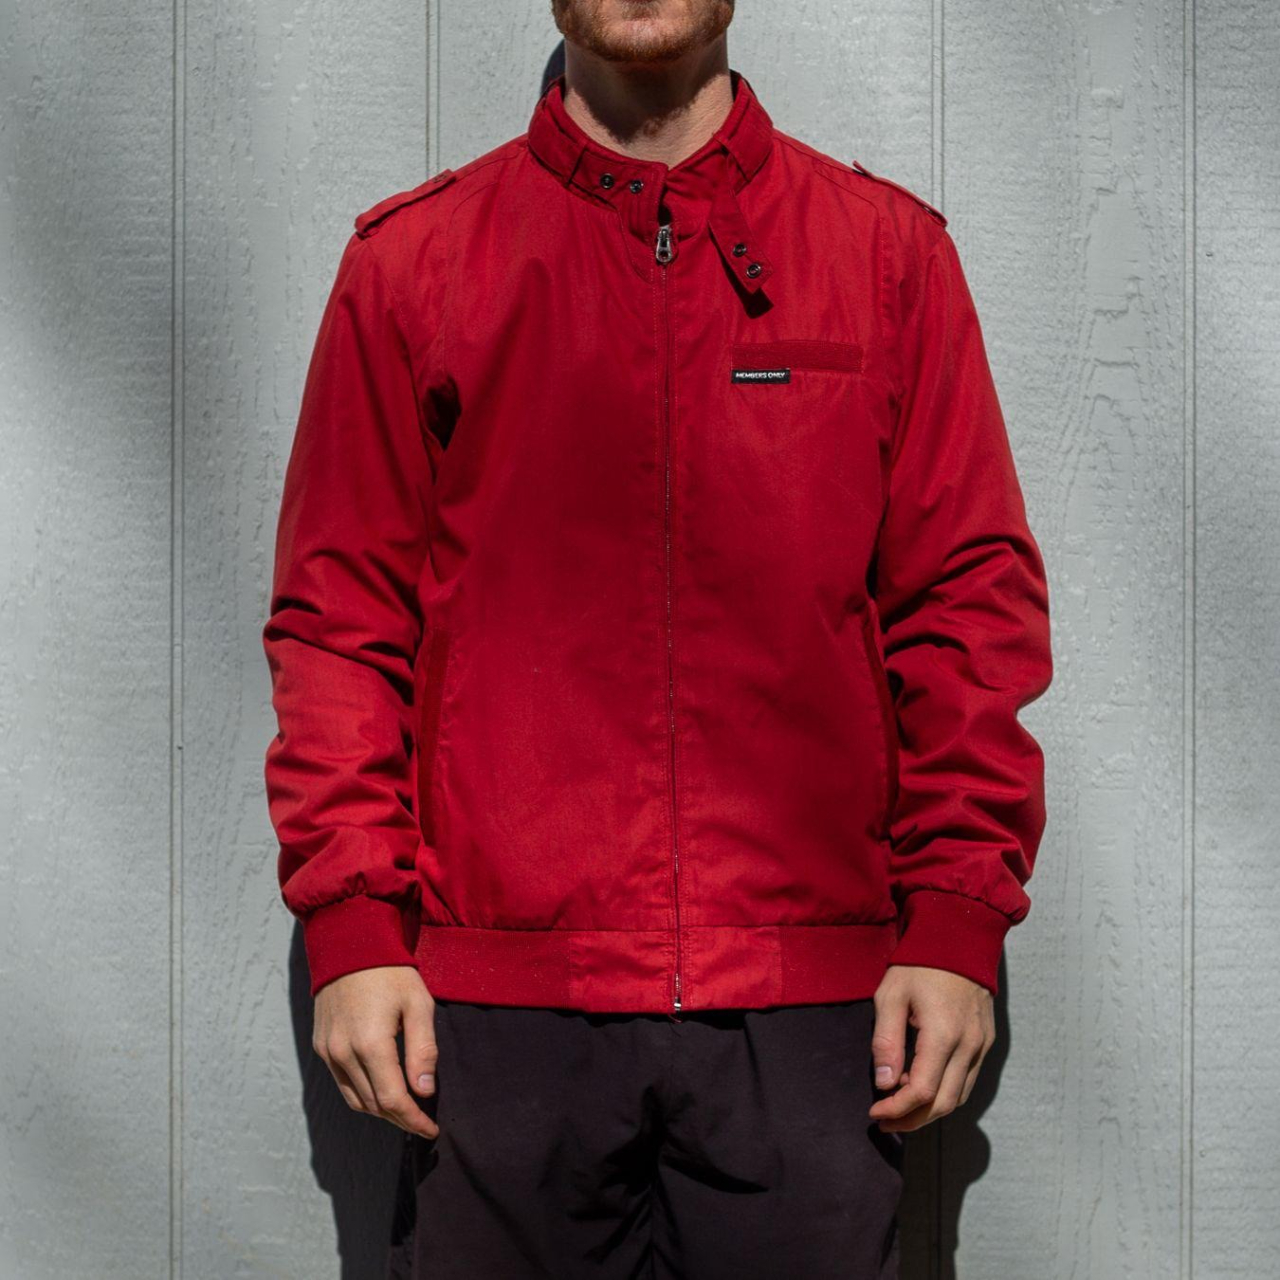 Product Image 1 - Members Only Racer Jacket L  $6